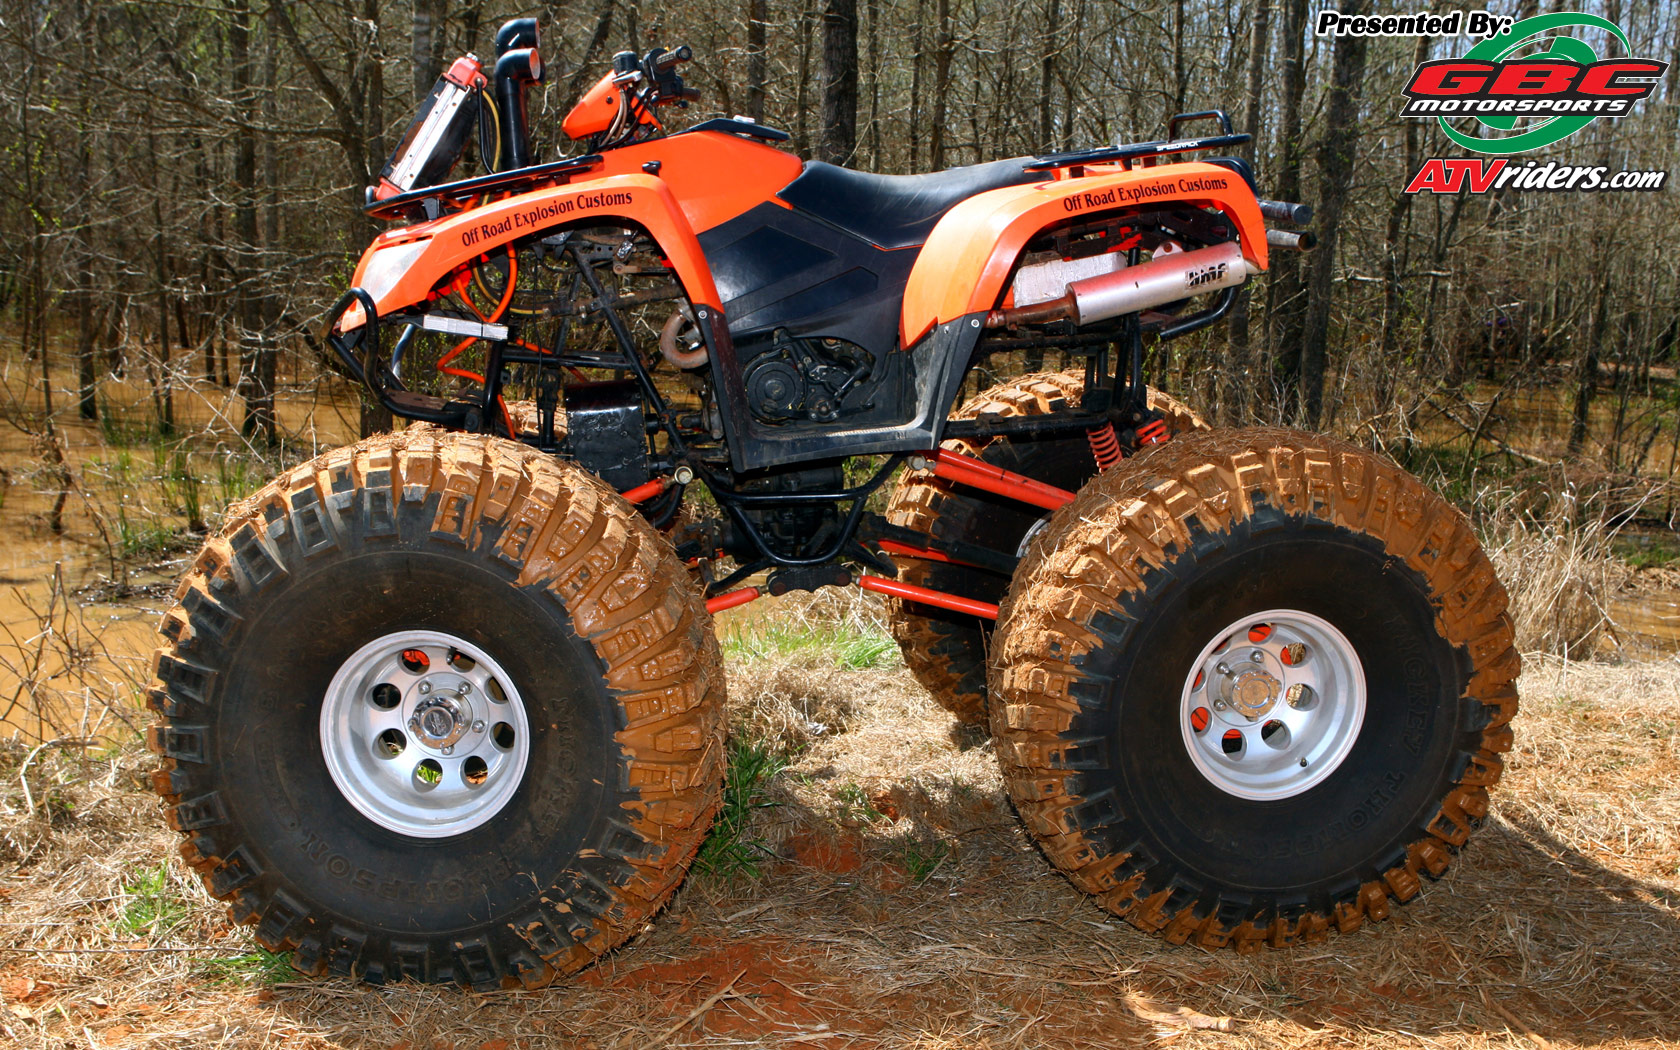 Cat ATV with Monster Tires   Wednesday Wallpapers   Weekly ATV 1680x1050